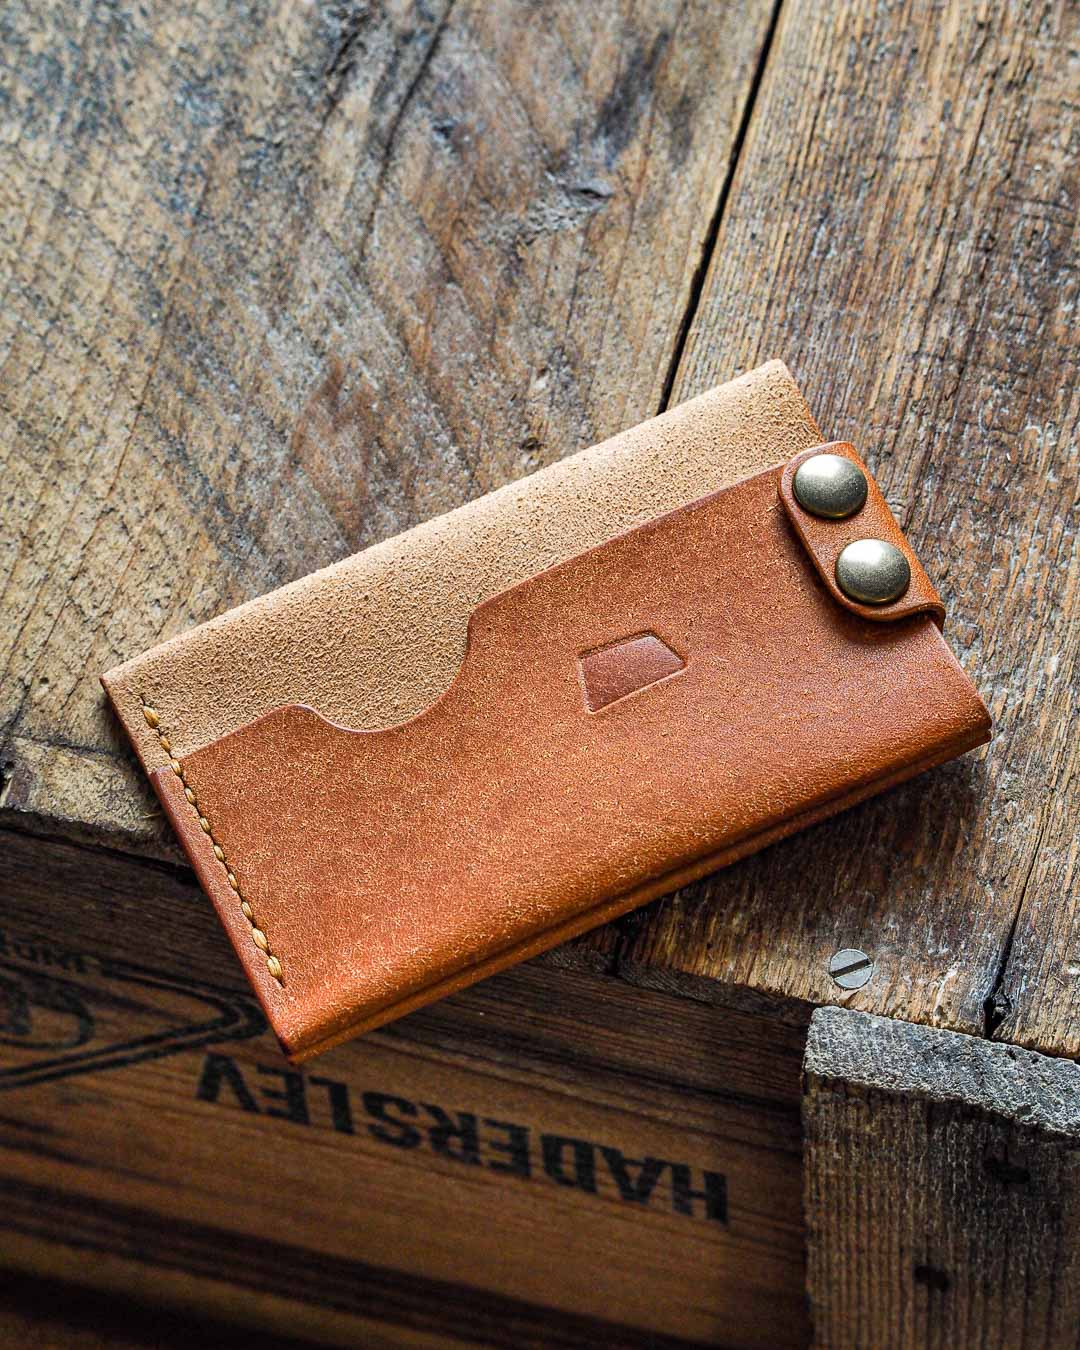 Luava handmade leather wallet. handcrafted flat wallet is a card holder made with badalassi carlo pueblo cognac. it's veg-tan full-grain cow leather from Italy. Flat wallet has a place for six cards and folded cash.